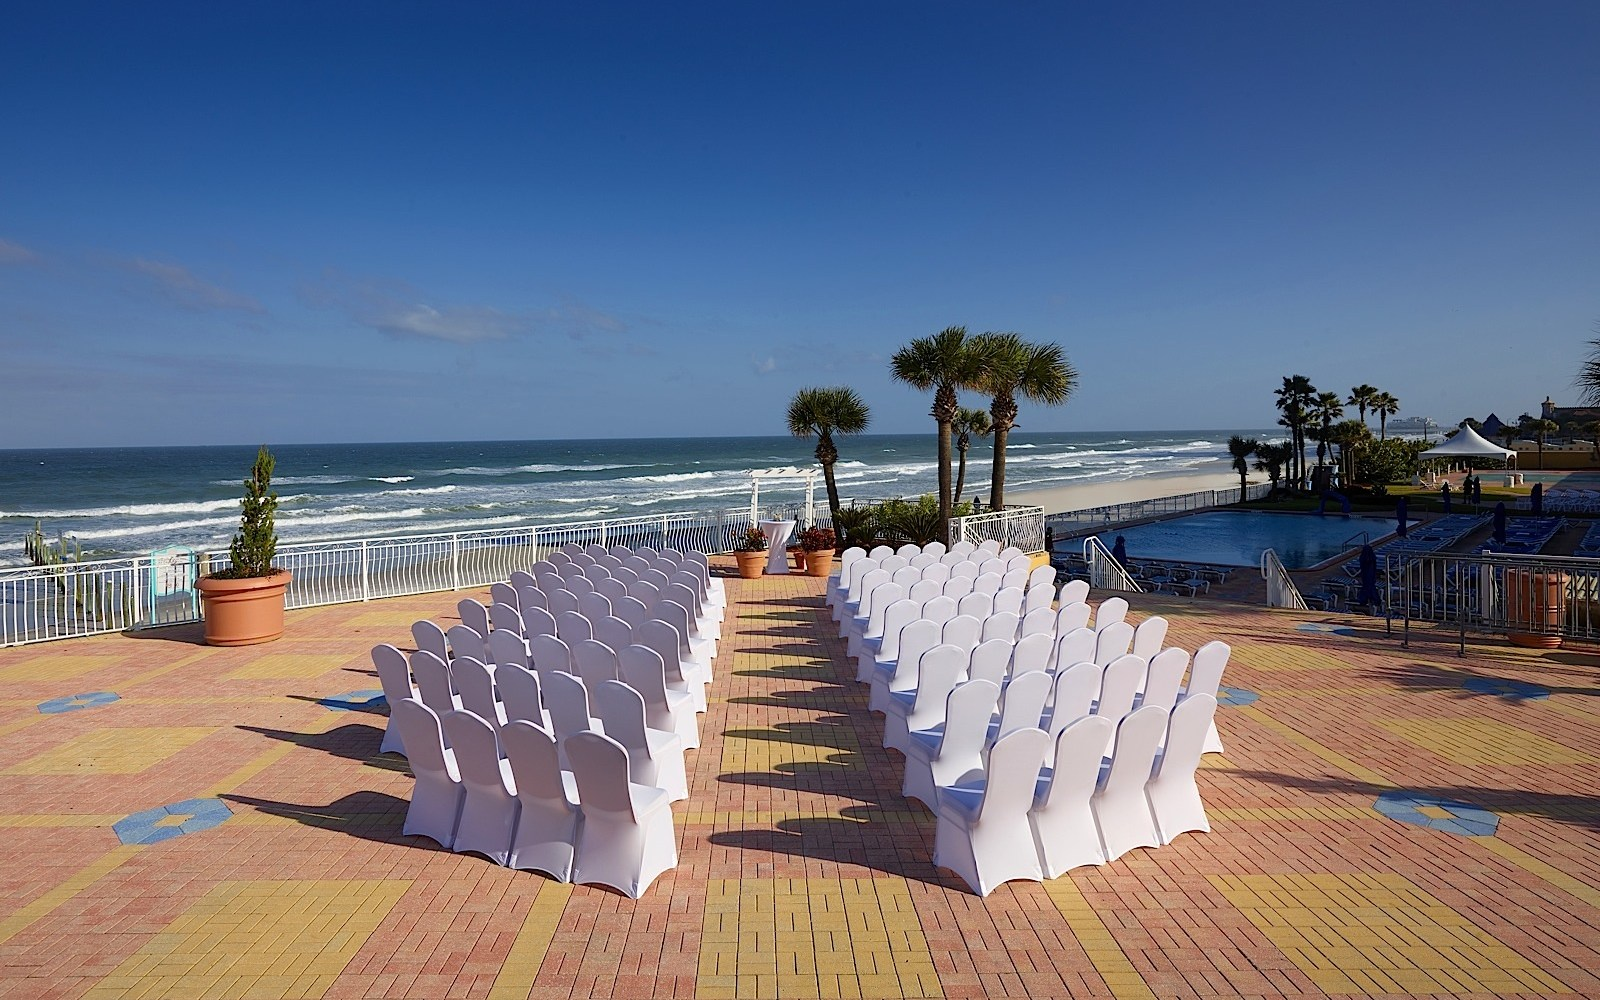 4.	The Shores Resort & Spa - Daytona Beach, Florida